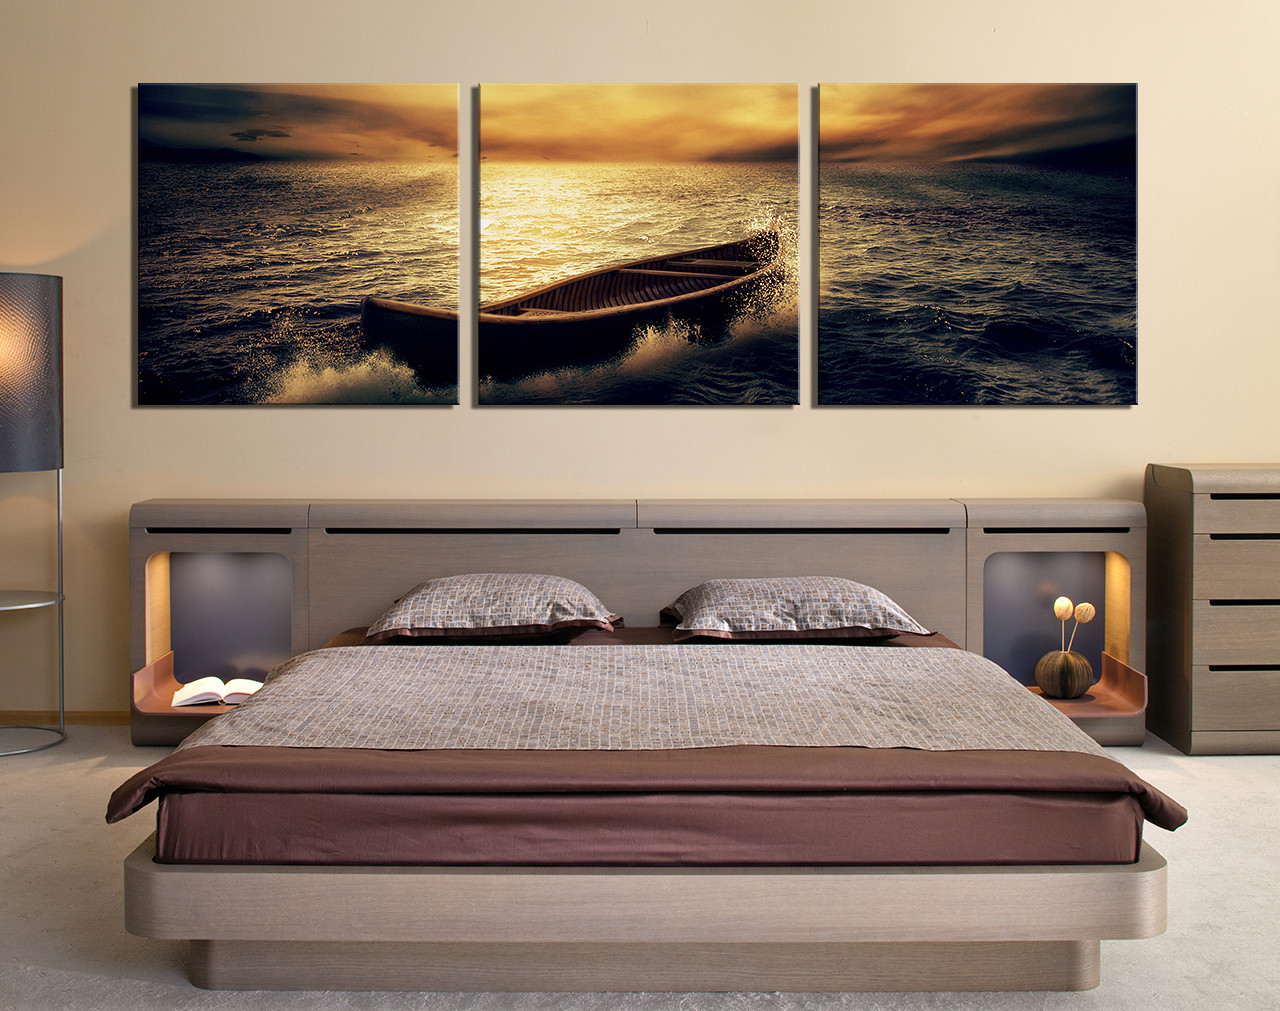 3 piece wall art  ocean pictures  bedroom wall decor  yellow art  boat. 3 Piece Group Canvas  Boat Canvas Wall Art  Panoramic Multi Panel